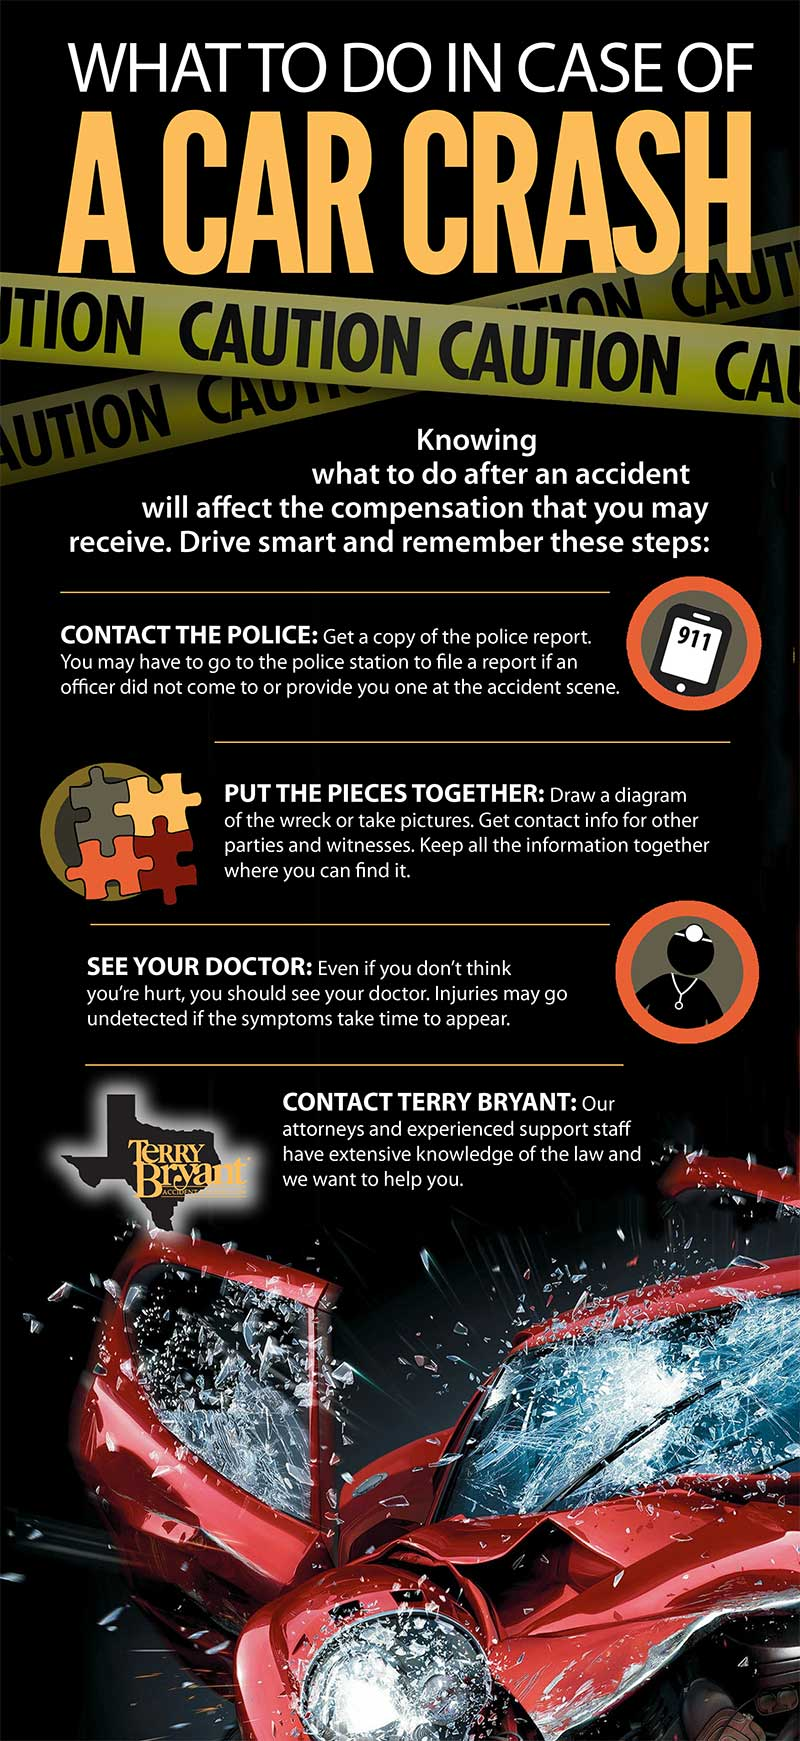 What To Do In case of a Car Crash infographic